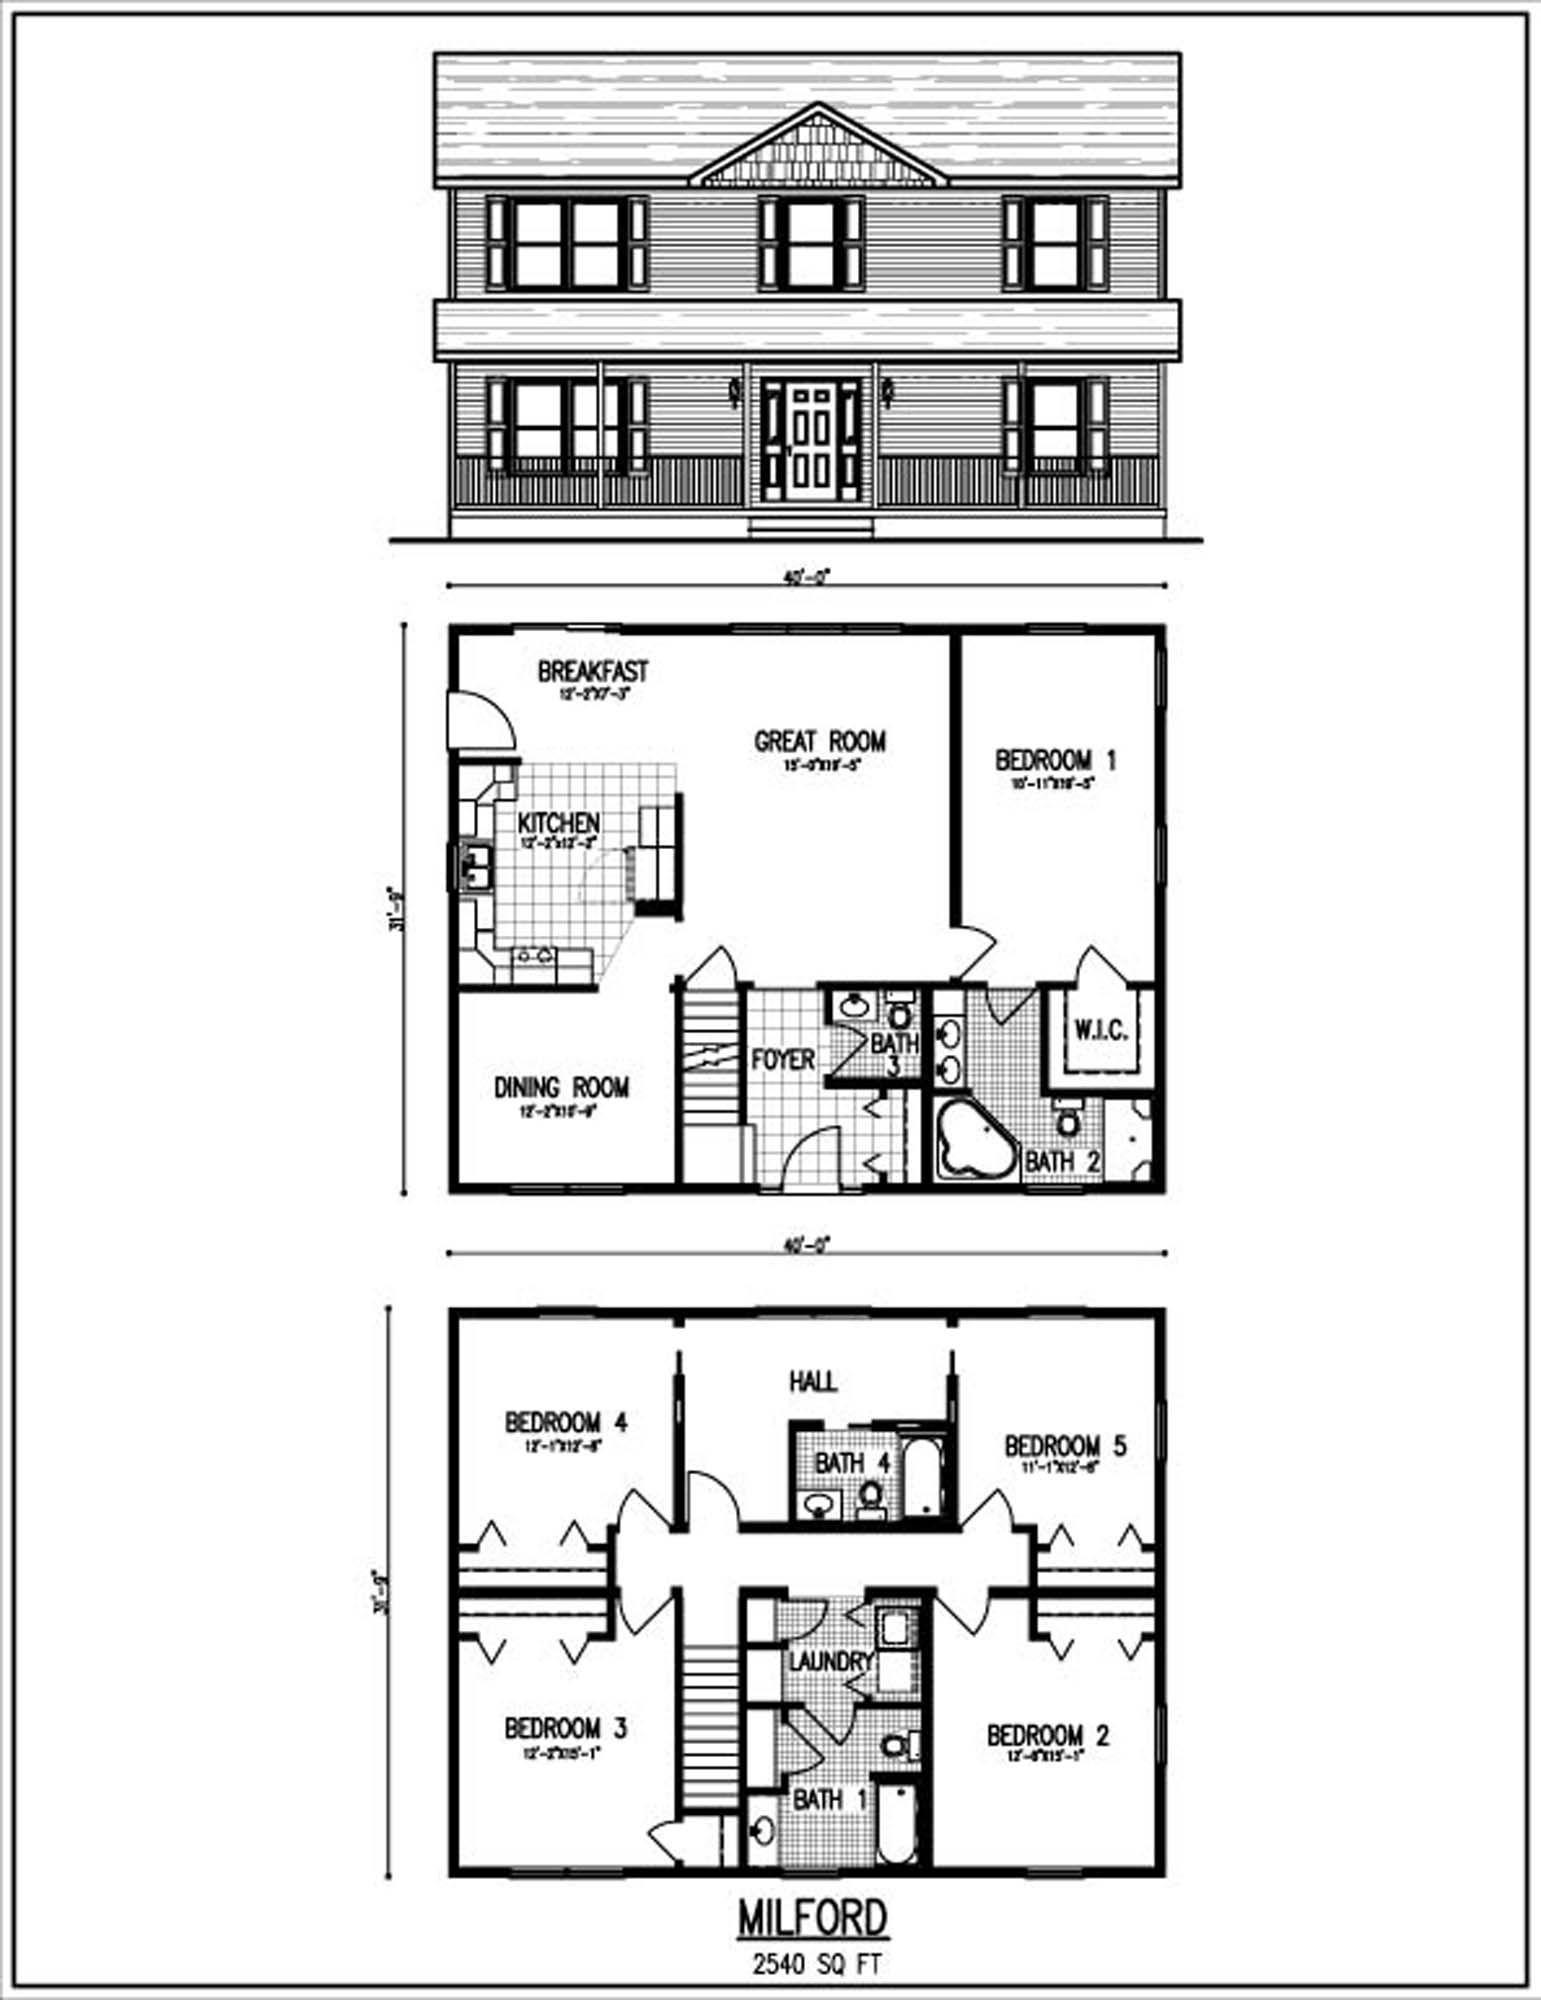 Best Barndominium Floor Plans For Planning Your Barndominium House on 20x20 home plans, 20x24 home plans, 30x30 home plans, 25x50 home plans, 24x30 home plans, 12x24 home plans, 16x20 home plans, 30x70 home plans, 16x16 home plans, 30x45 home plans, 50x80 home plans, 16x40 home plans, 16x24 home plans, 24x36 home plans, 24x40 home plans, 40x40 home plans, 16x36 home plans, 40x50 home plans, 40x60 home plans, 20x40 home plans,